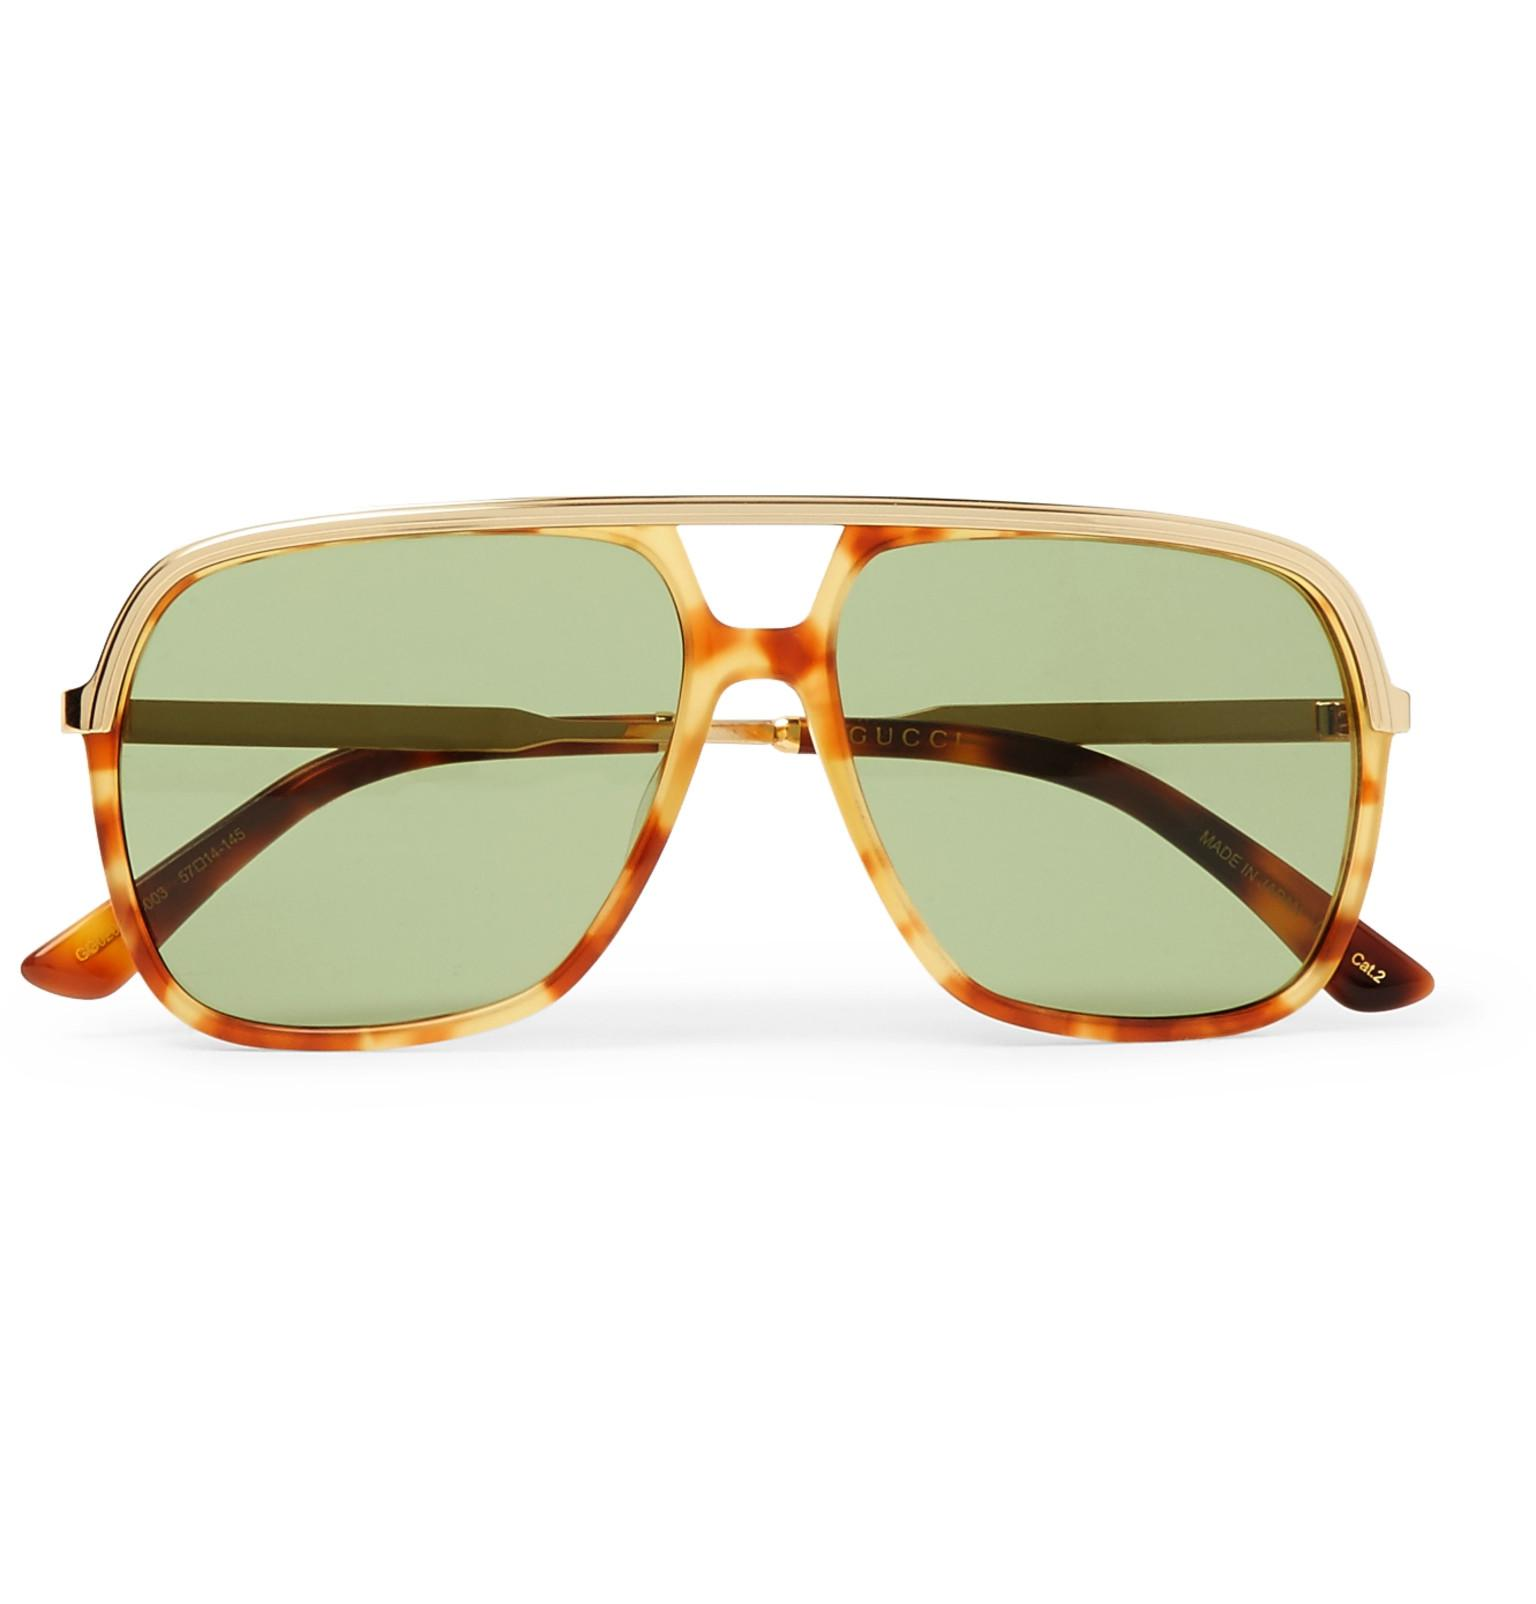 68dd9be2a98 Lyst - Gucci Aviator-style Tortoiseshell Acetate And Gold-tone ...